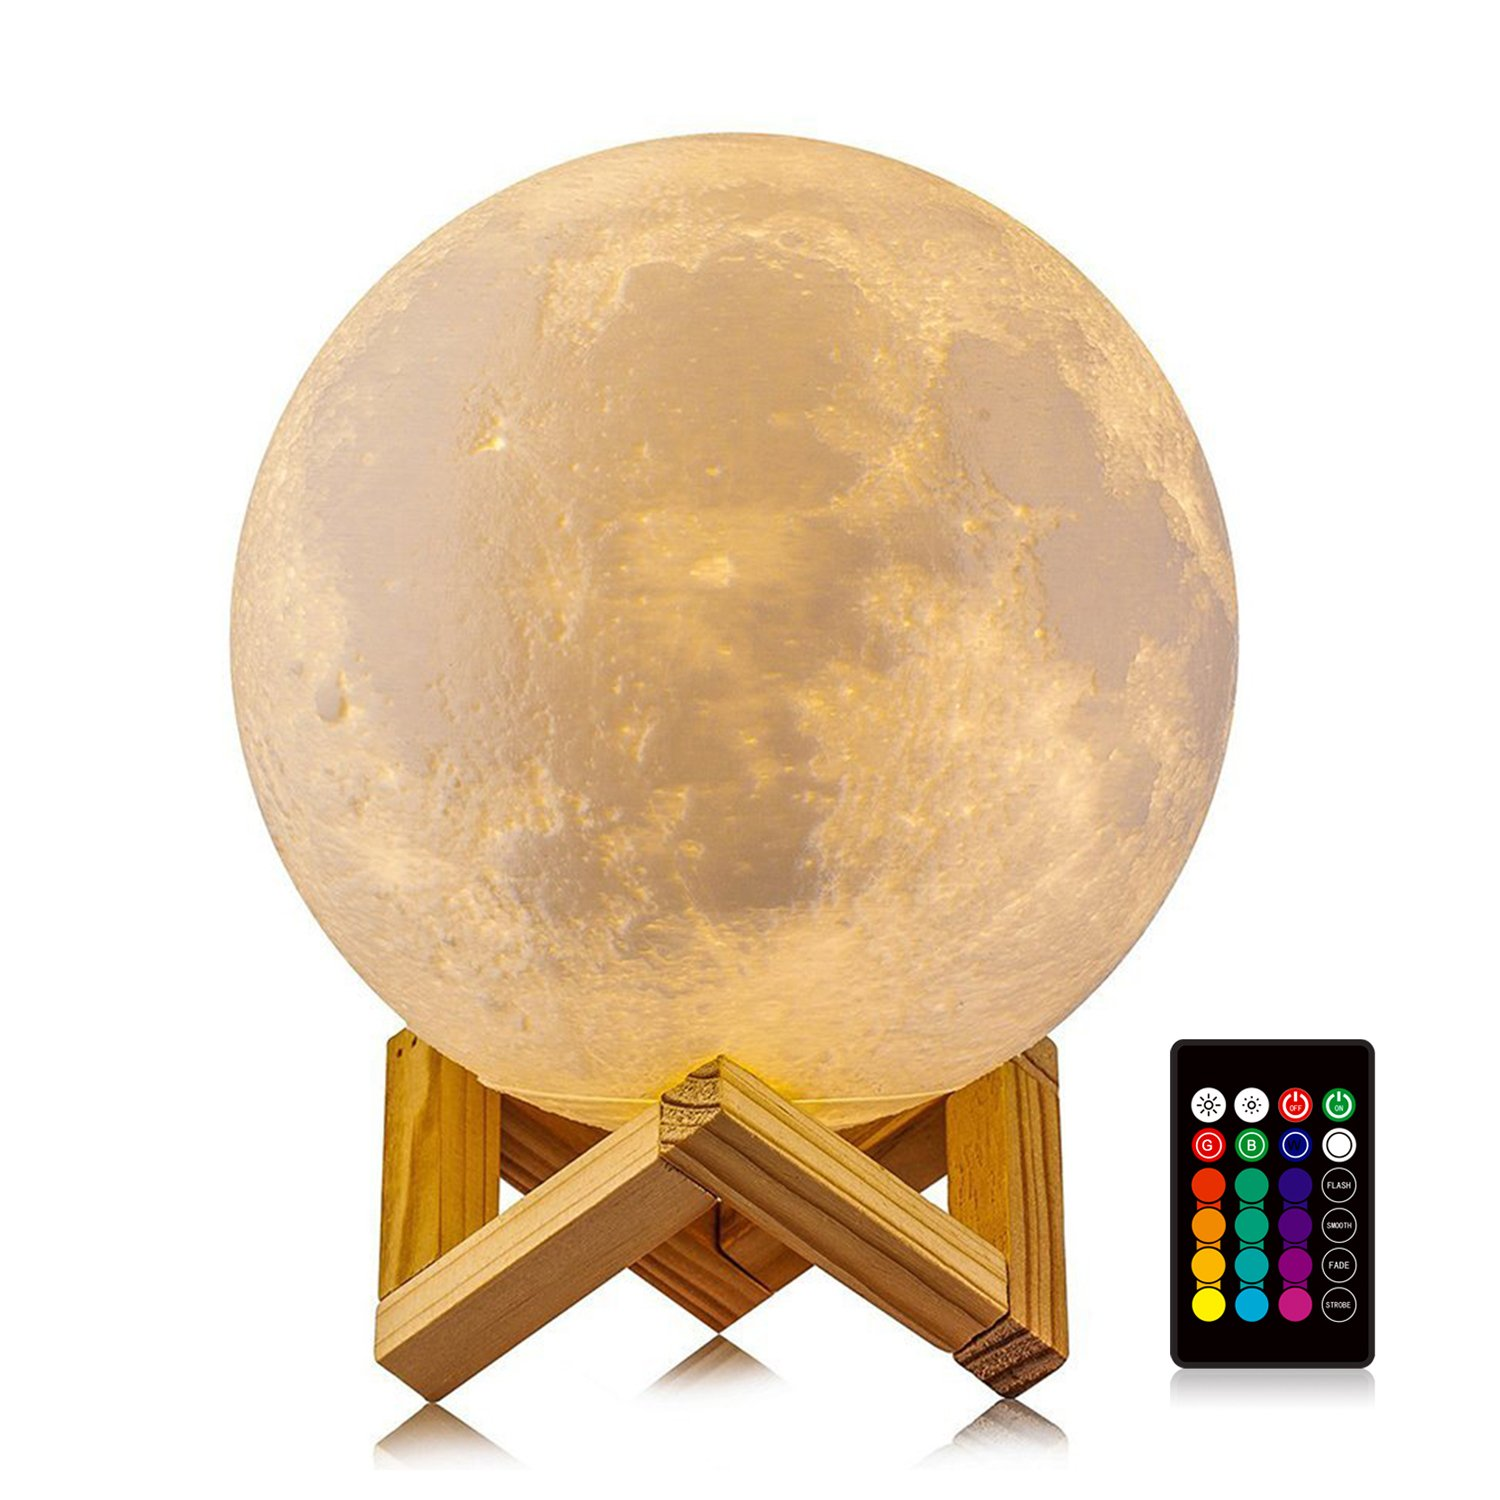 LOGROTATE Moon Lamp, 3D Print LED 16 Colors RGB Moon Light, Decorative Lights Night Light with Remote&Touch Control and Adjustable Brightness&USB Recharge(Diameter 6 INCH)